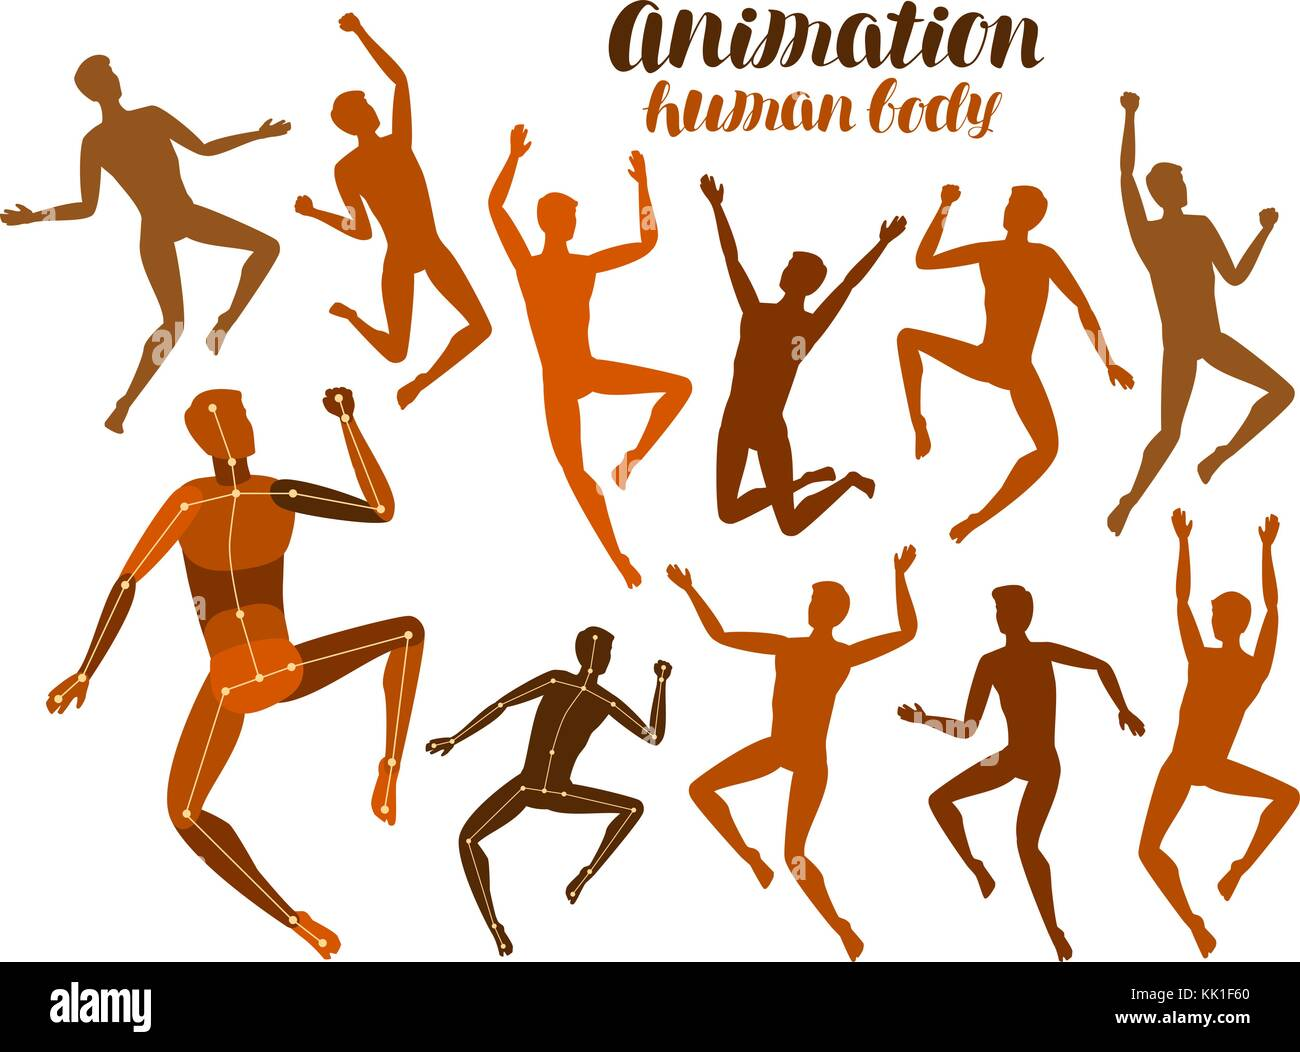 Animation of human body. Anatomy, people in motion concept. Silhouettes, vector illustration - Stock Image